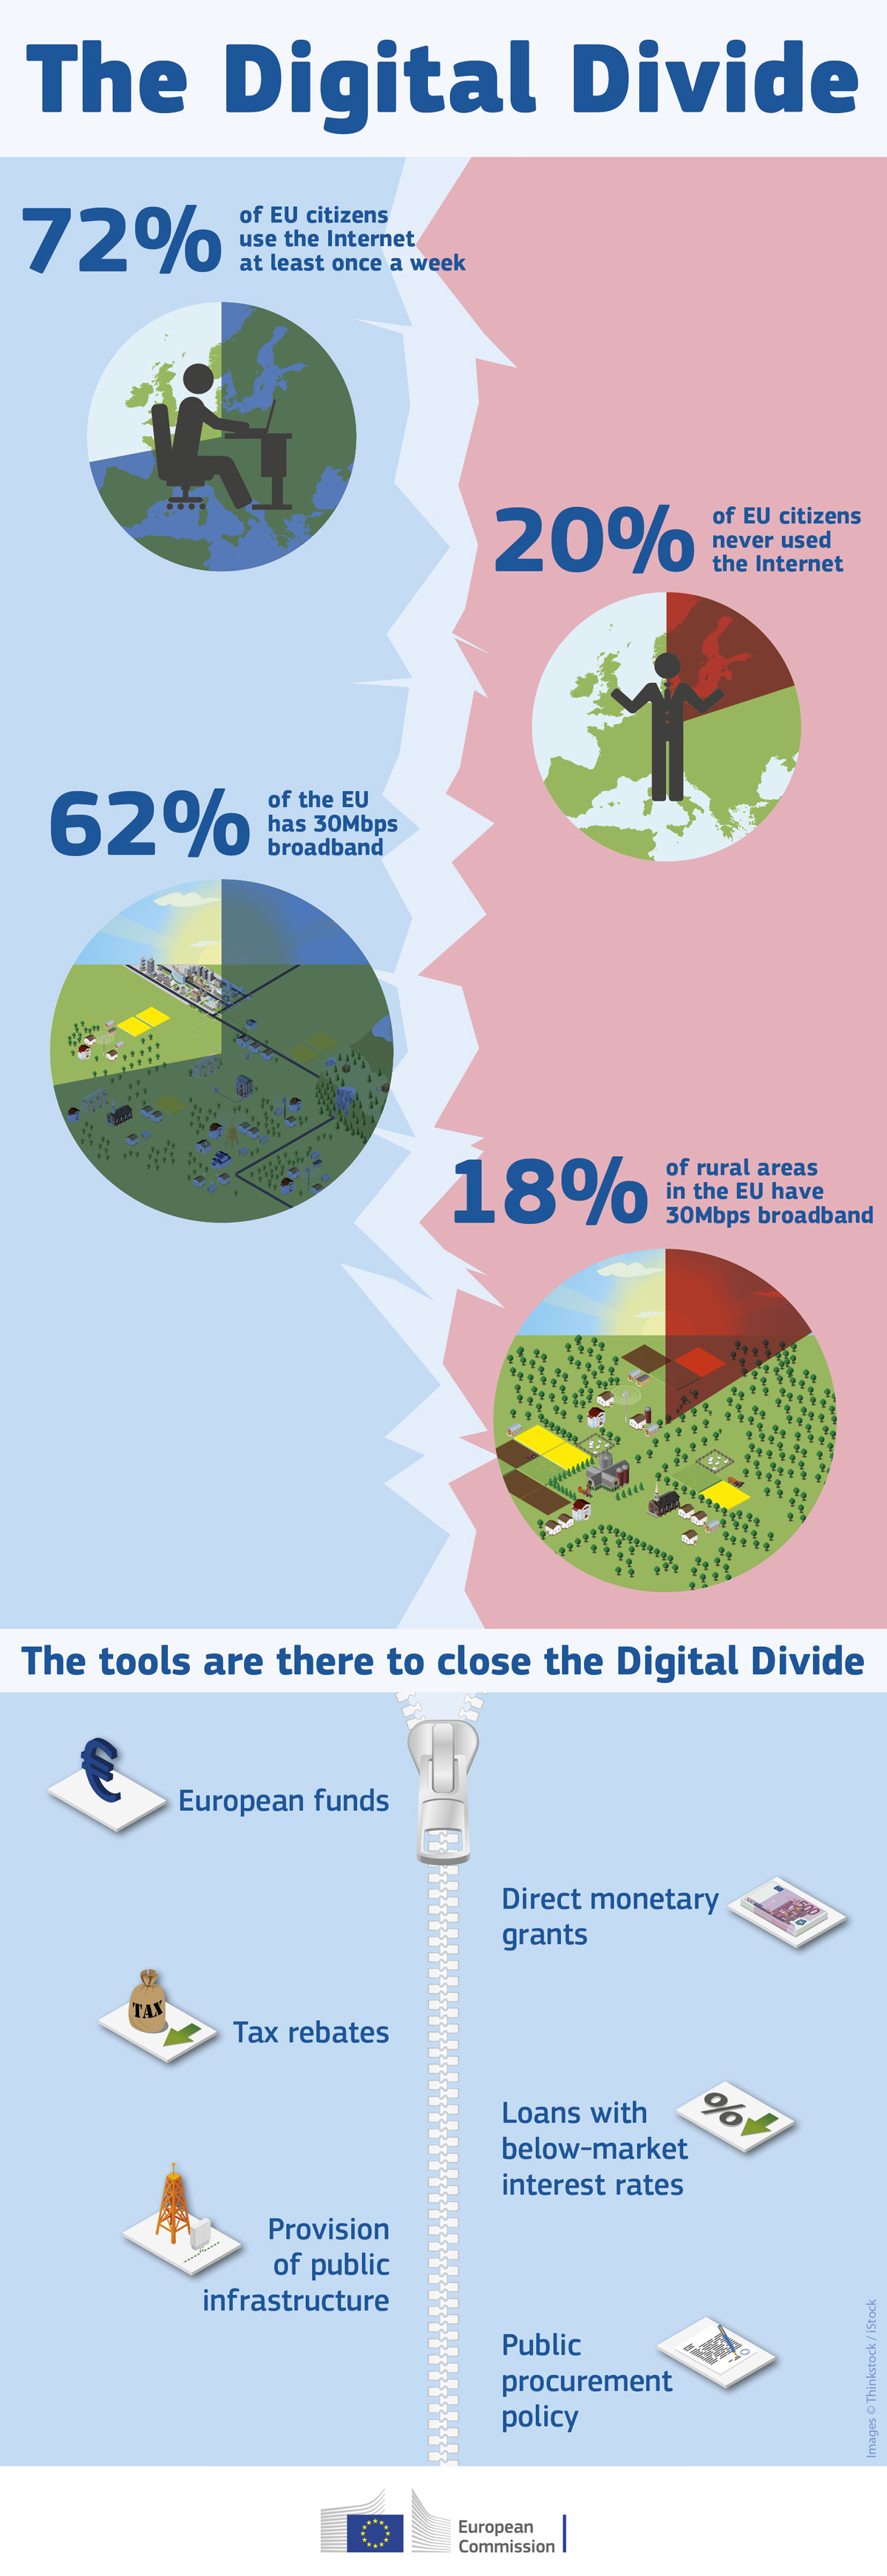 scoreboard_2014 - digital divide infographics_5796